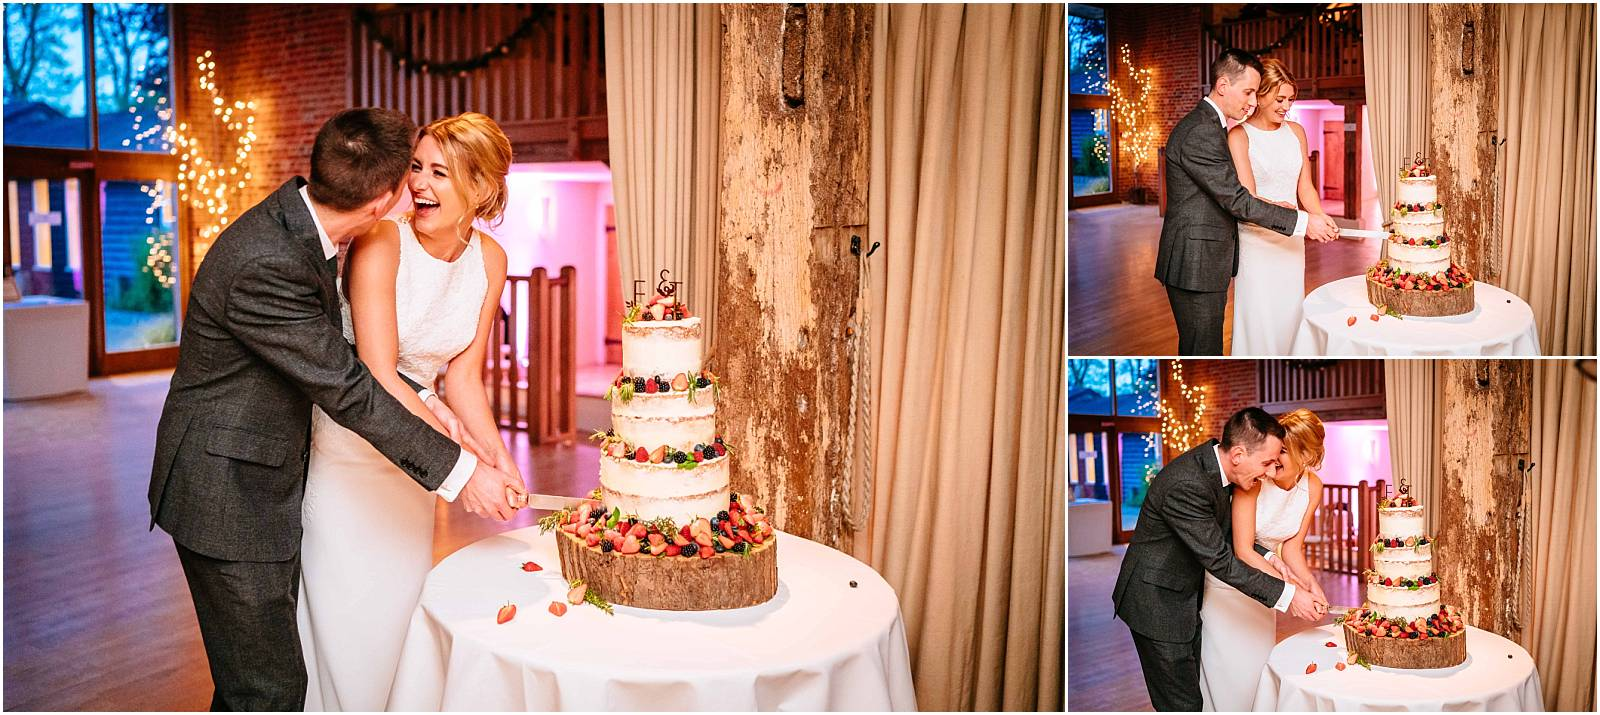 great photographs of cake cutting